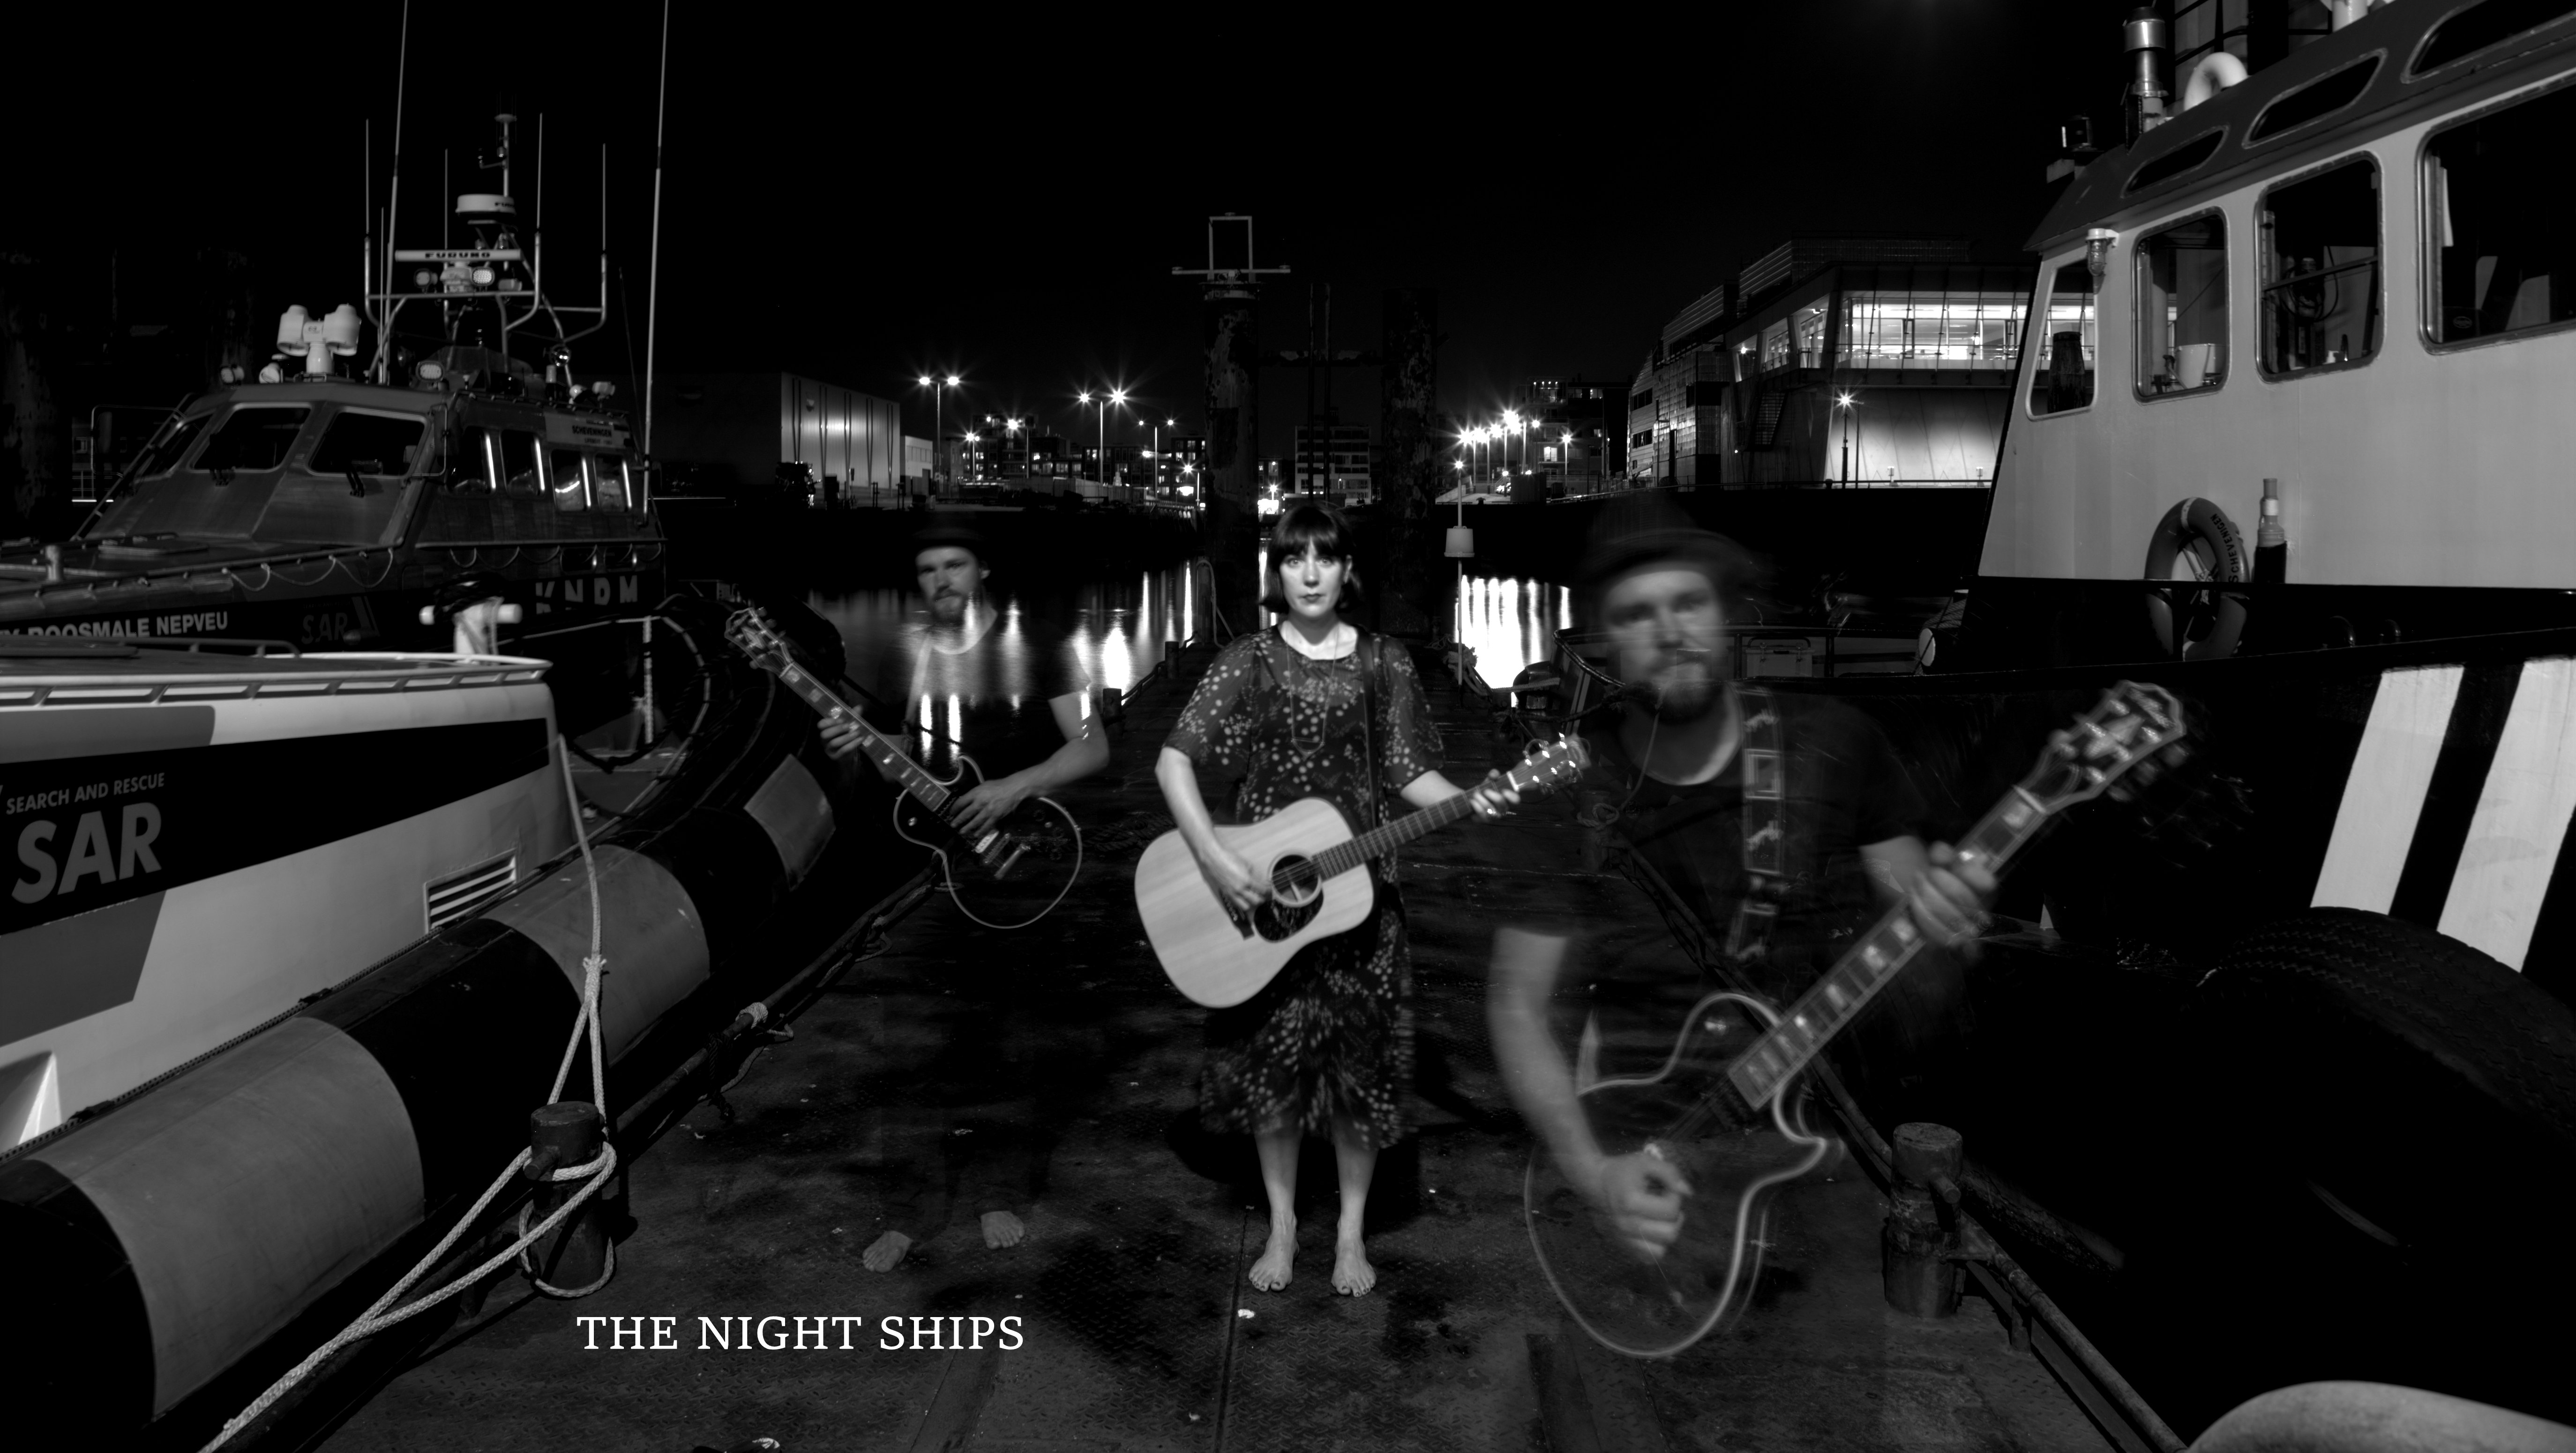 The Night Ships